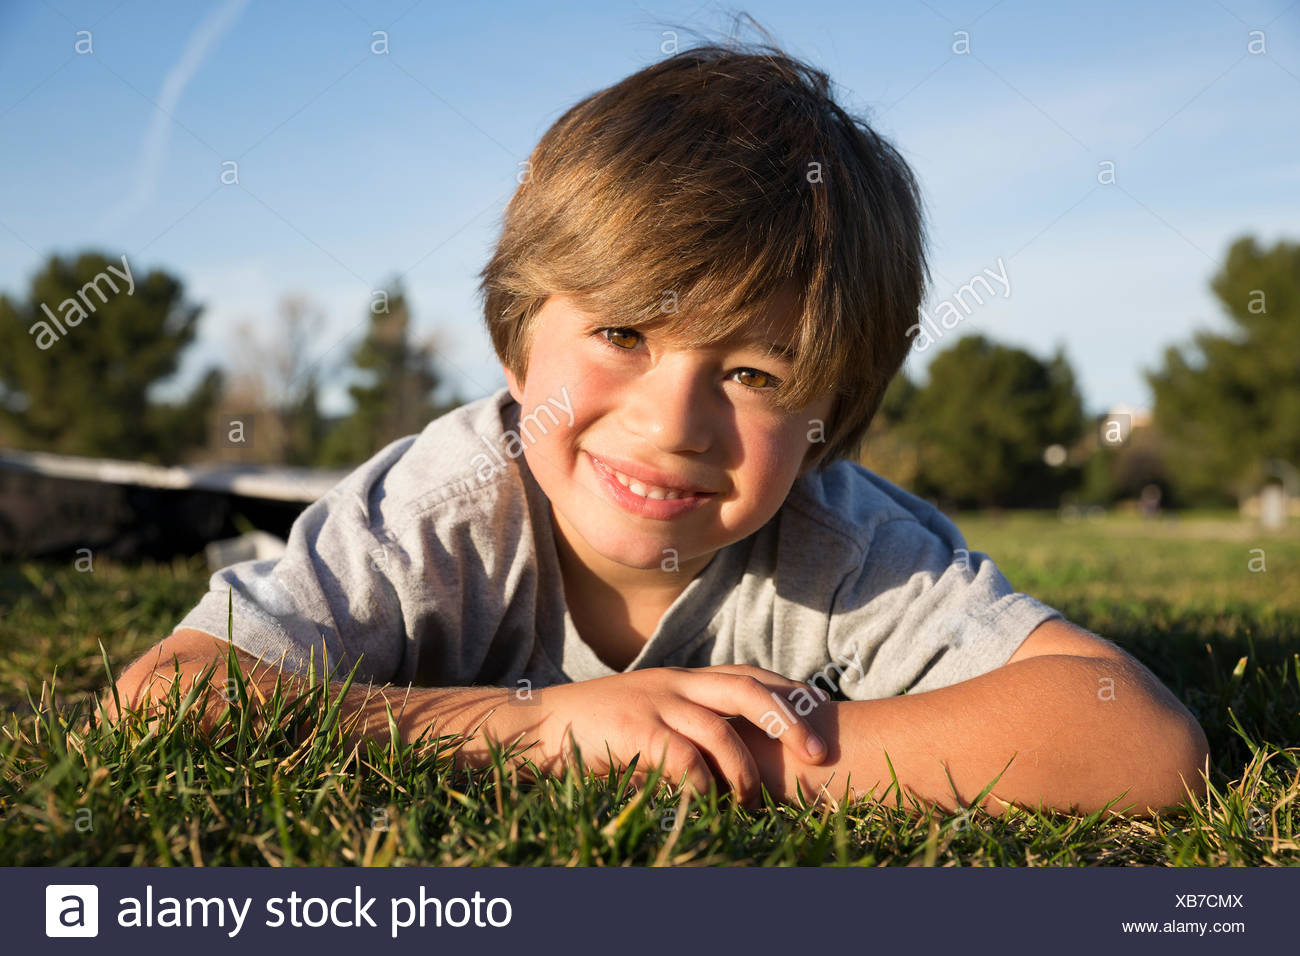 Portrait of smiling boy lying on park grass - Stock Image